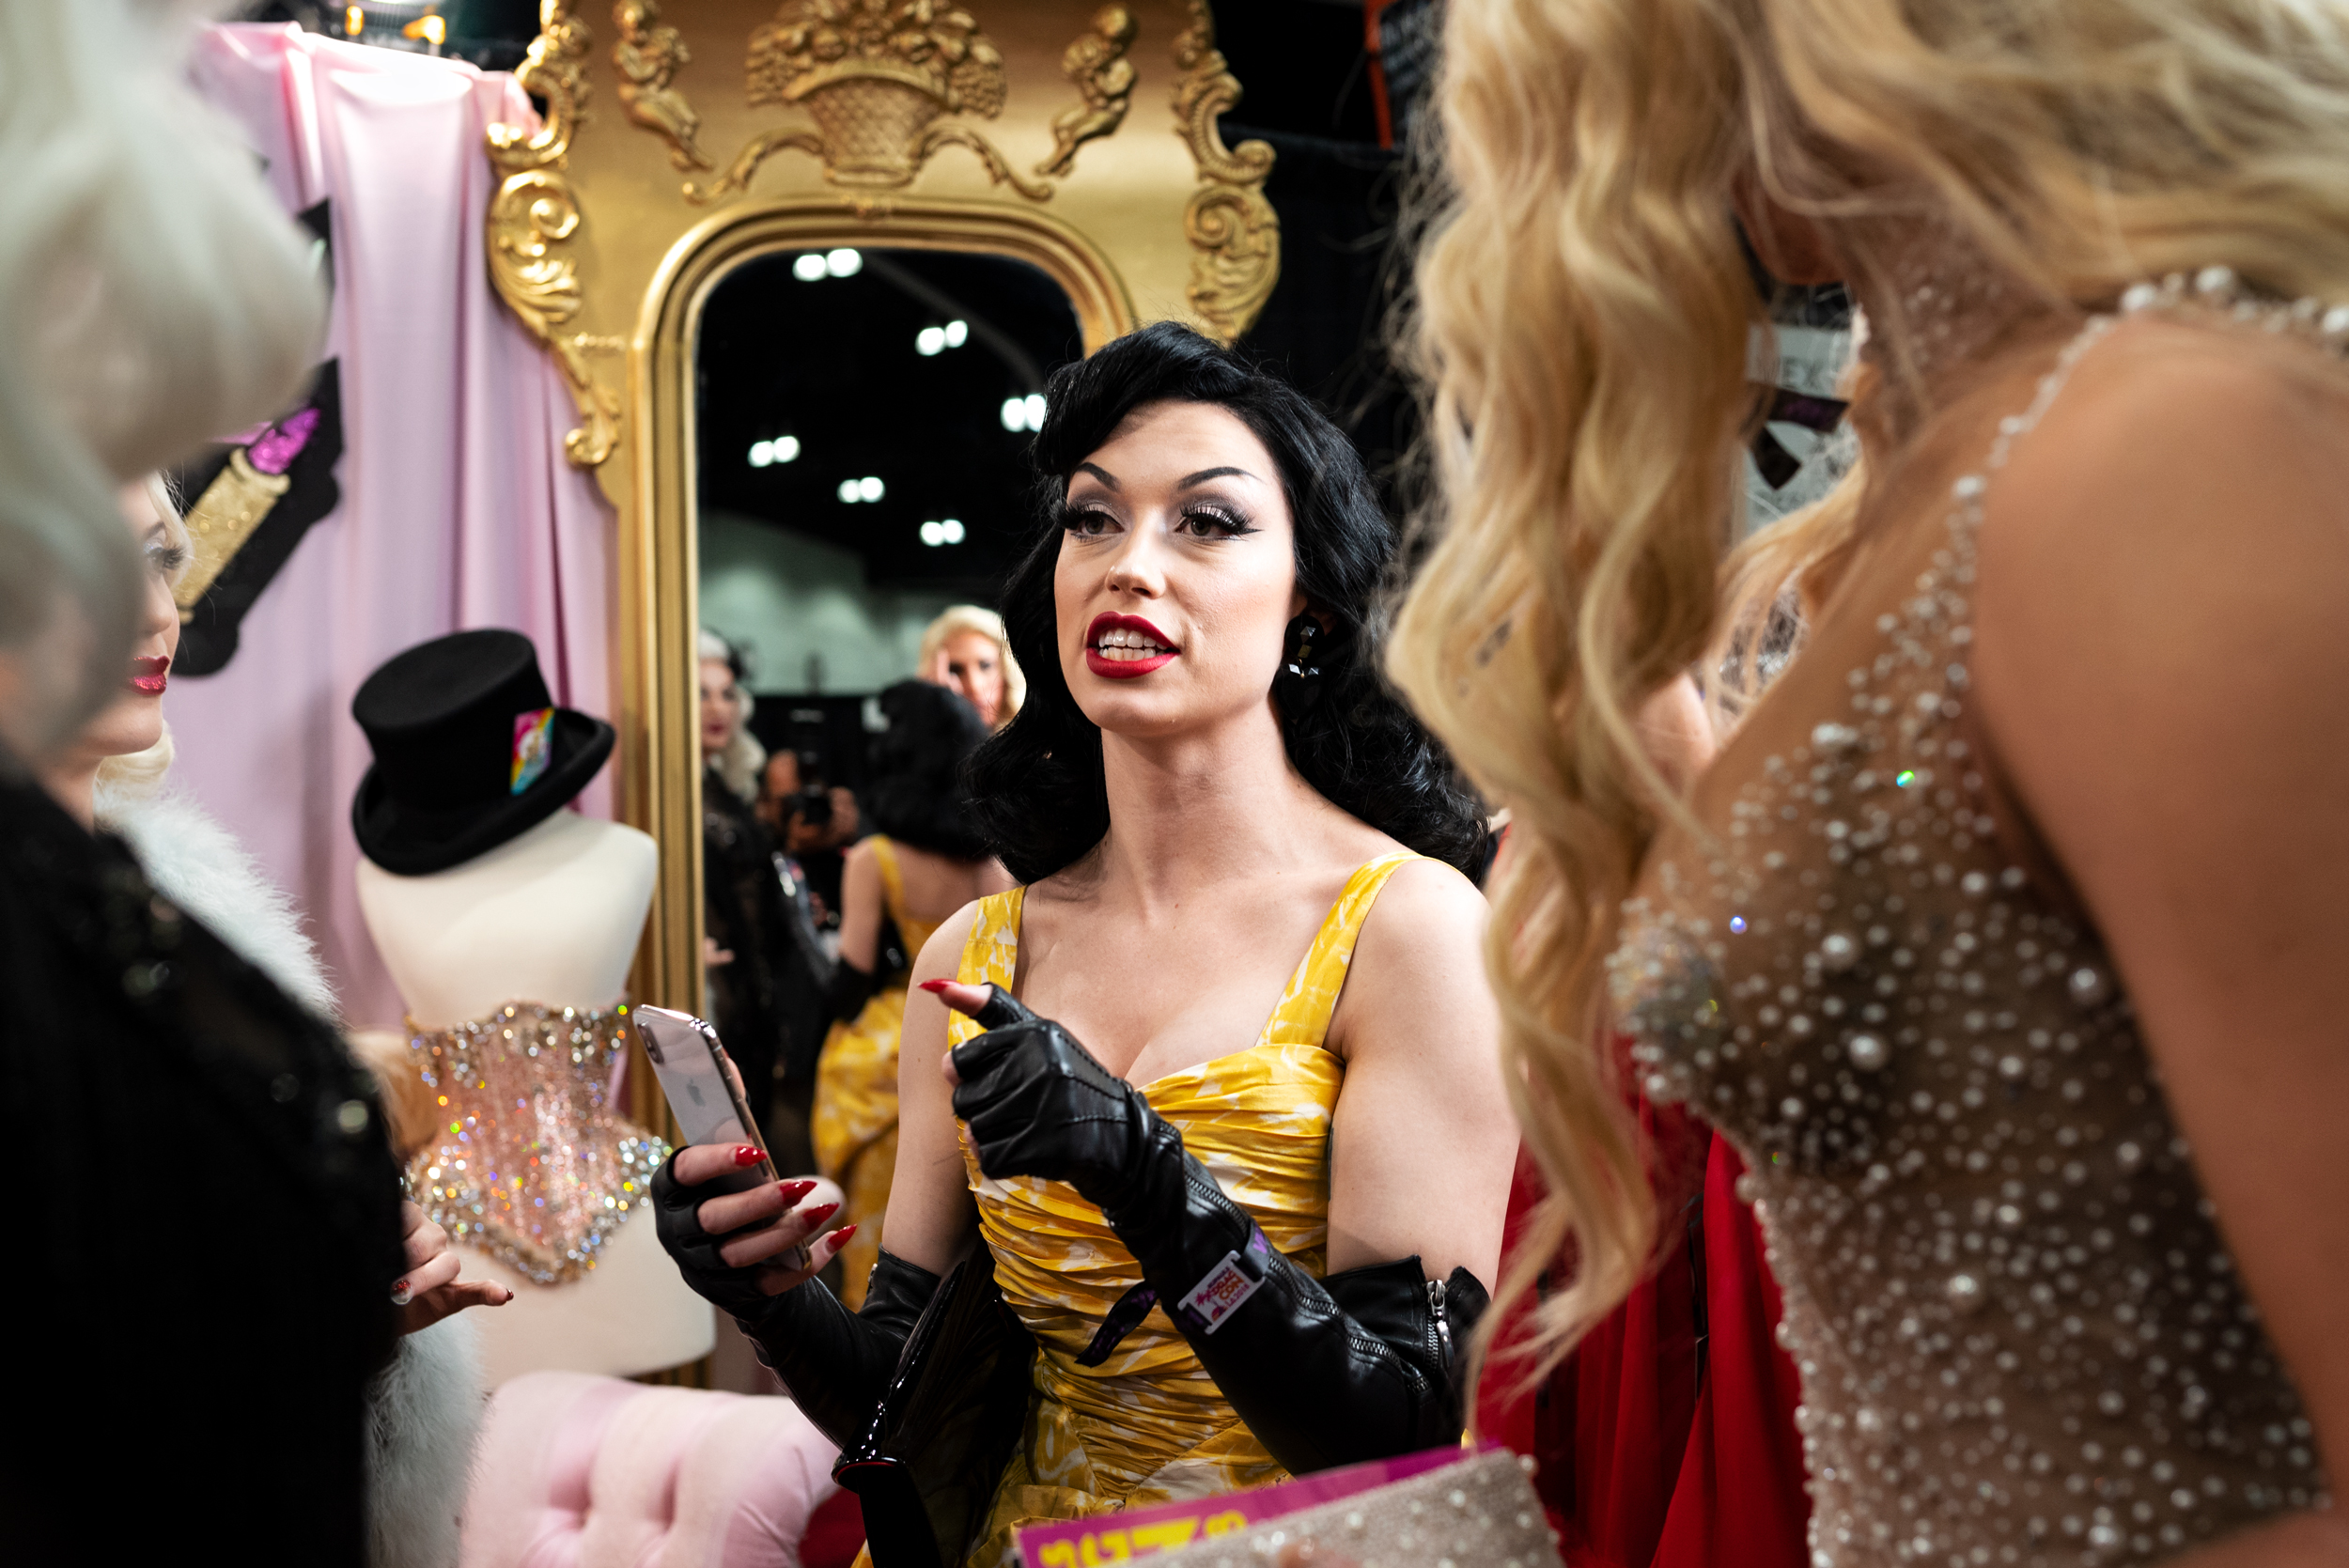 Bryona Ashly during RuPaul's DragCon at the Los Angeles Conventi